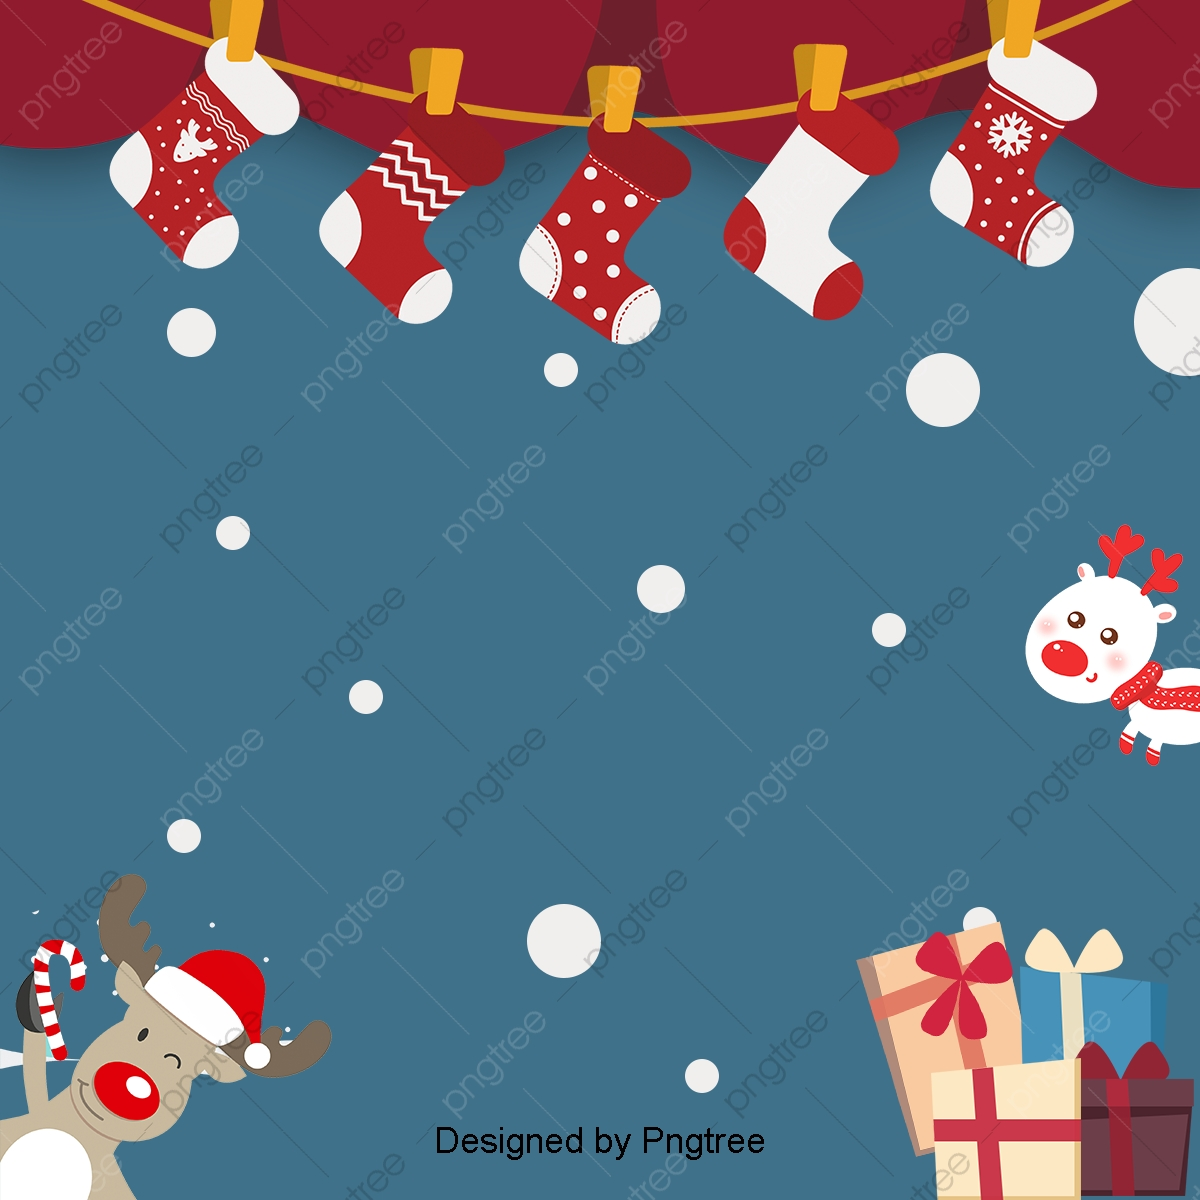 the retro cute blue christmas background background retro red png transparent clipart image and psd file for free download https pngtree com freepng the retro cute blue christmas background 3710858 html